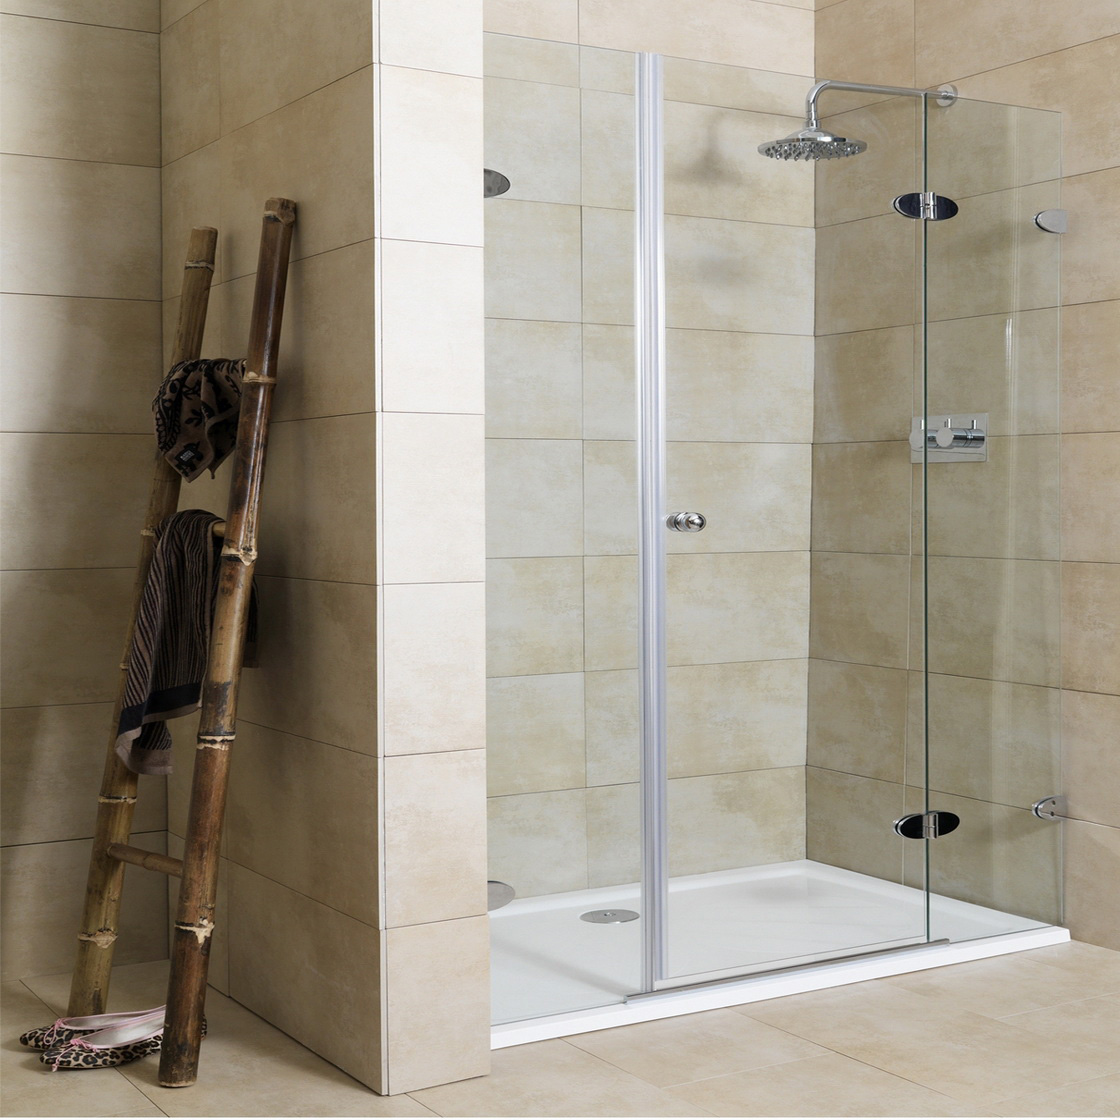 frameless sliding shower doors featured top frameless sliding glass shower doors bathroom remodeling ideas